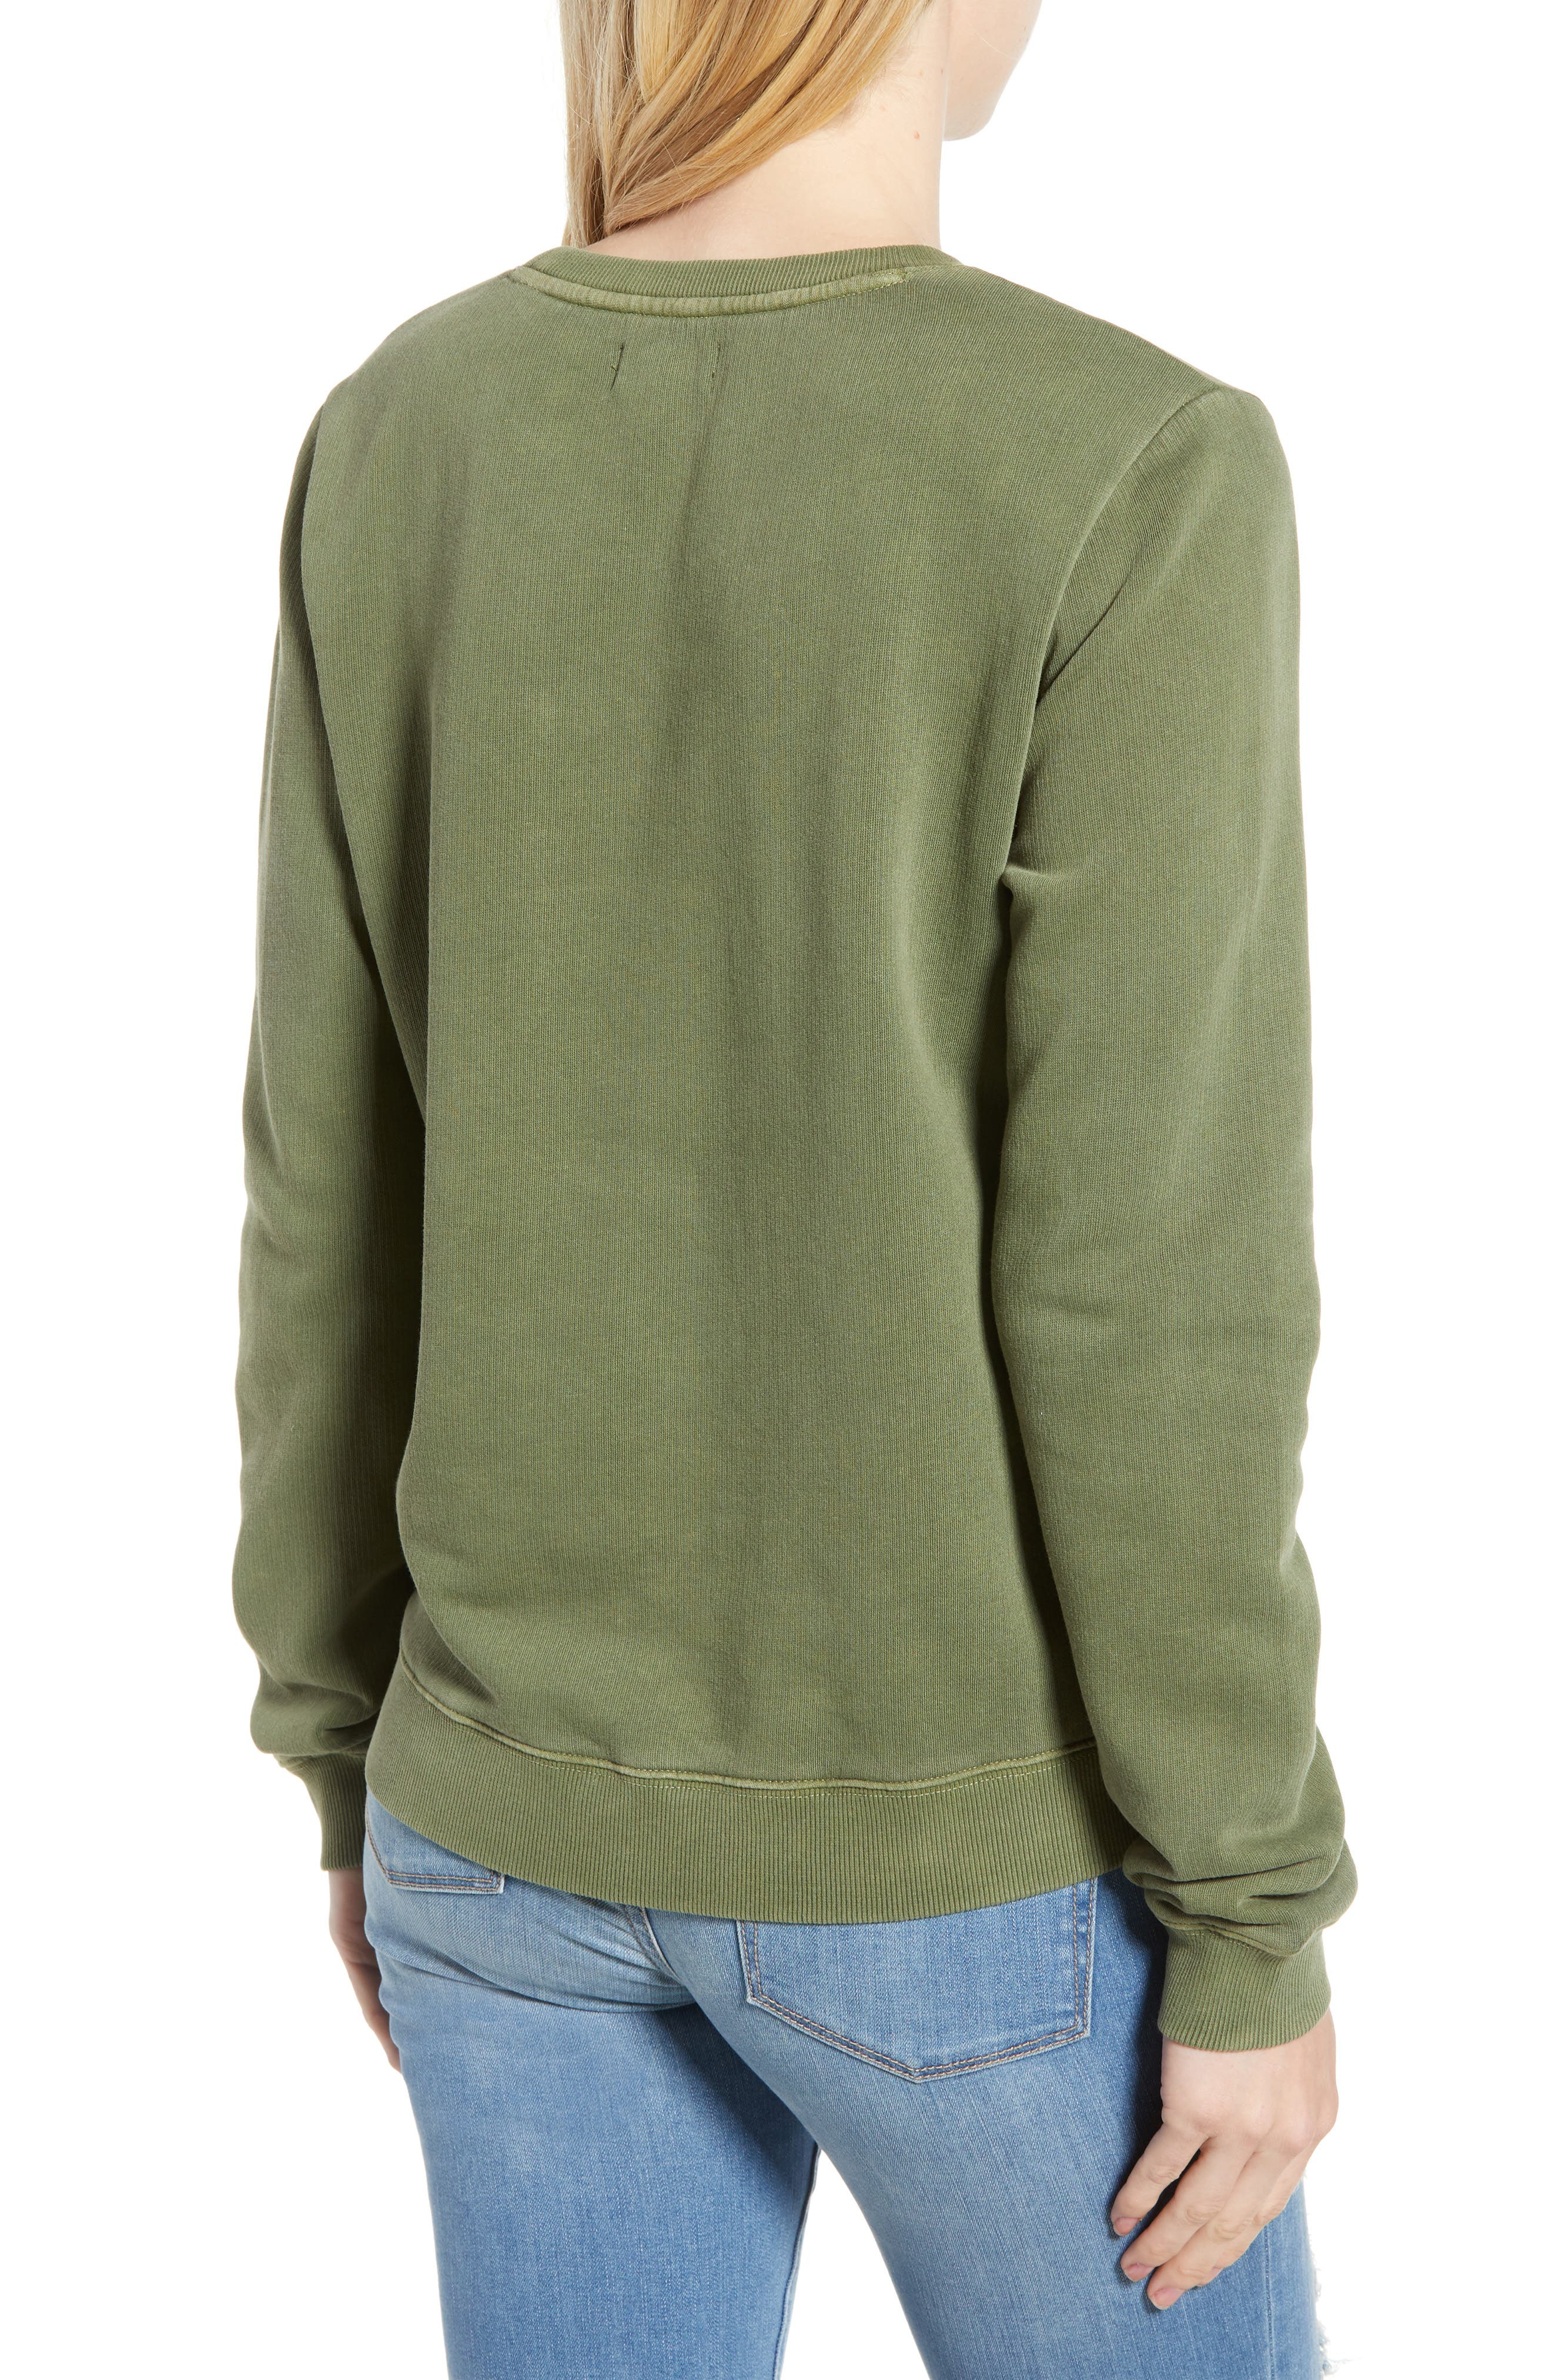 Embroidered Flowers Sweatshirt,                             Alternate thumbnail 2, color,                             OLIVE KNIT